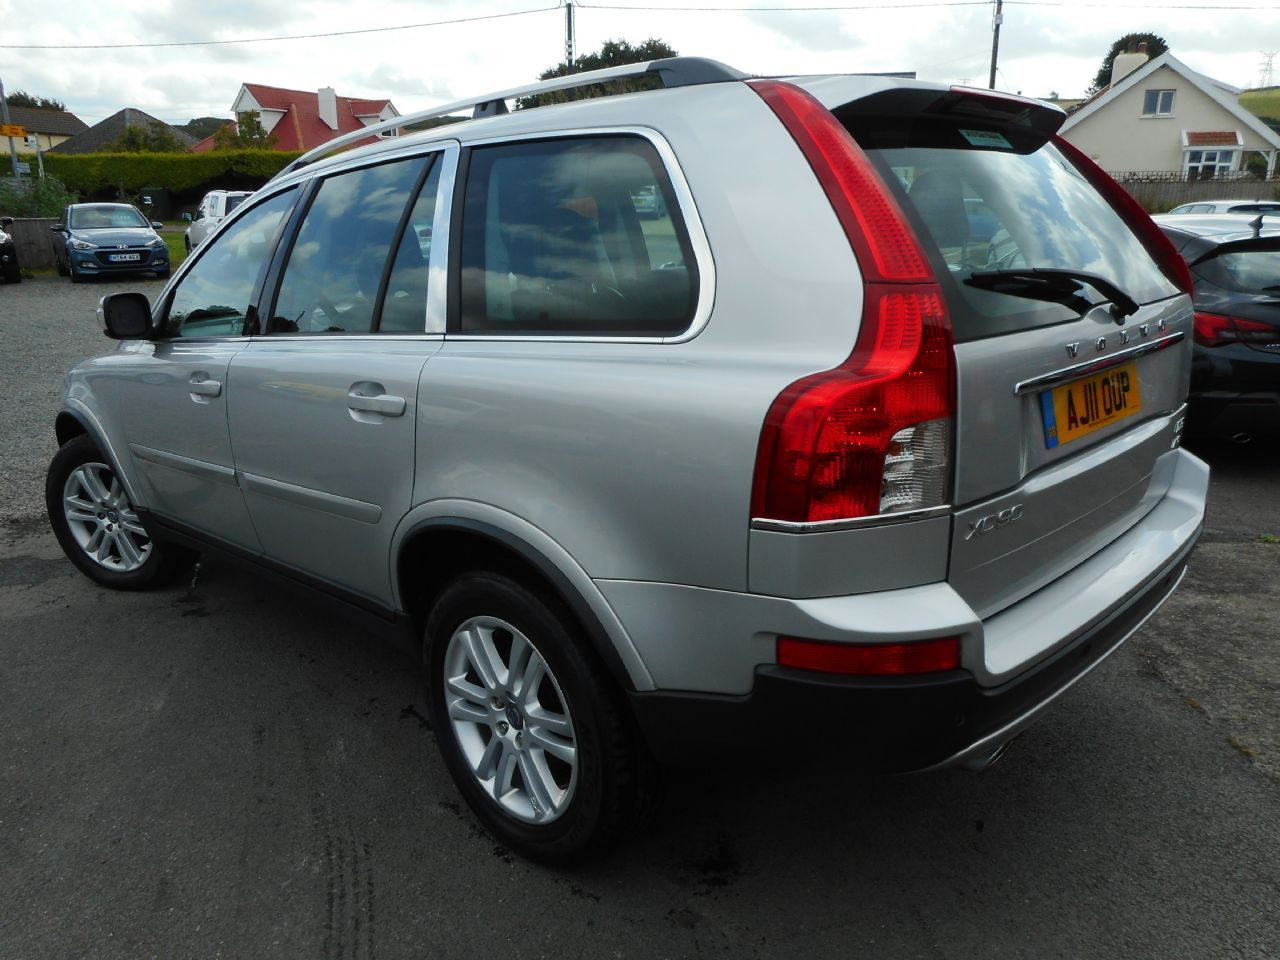 VOLVO XC90 D5 AWD (200 bhp) SE Lux Geartronic (2011) - Picture 4